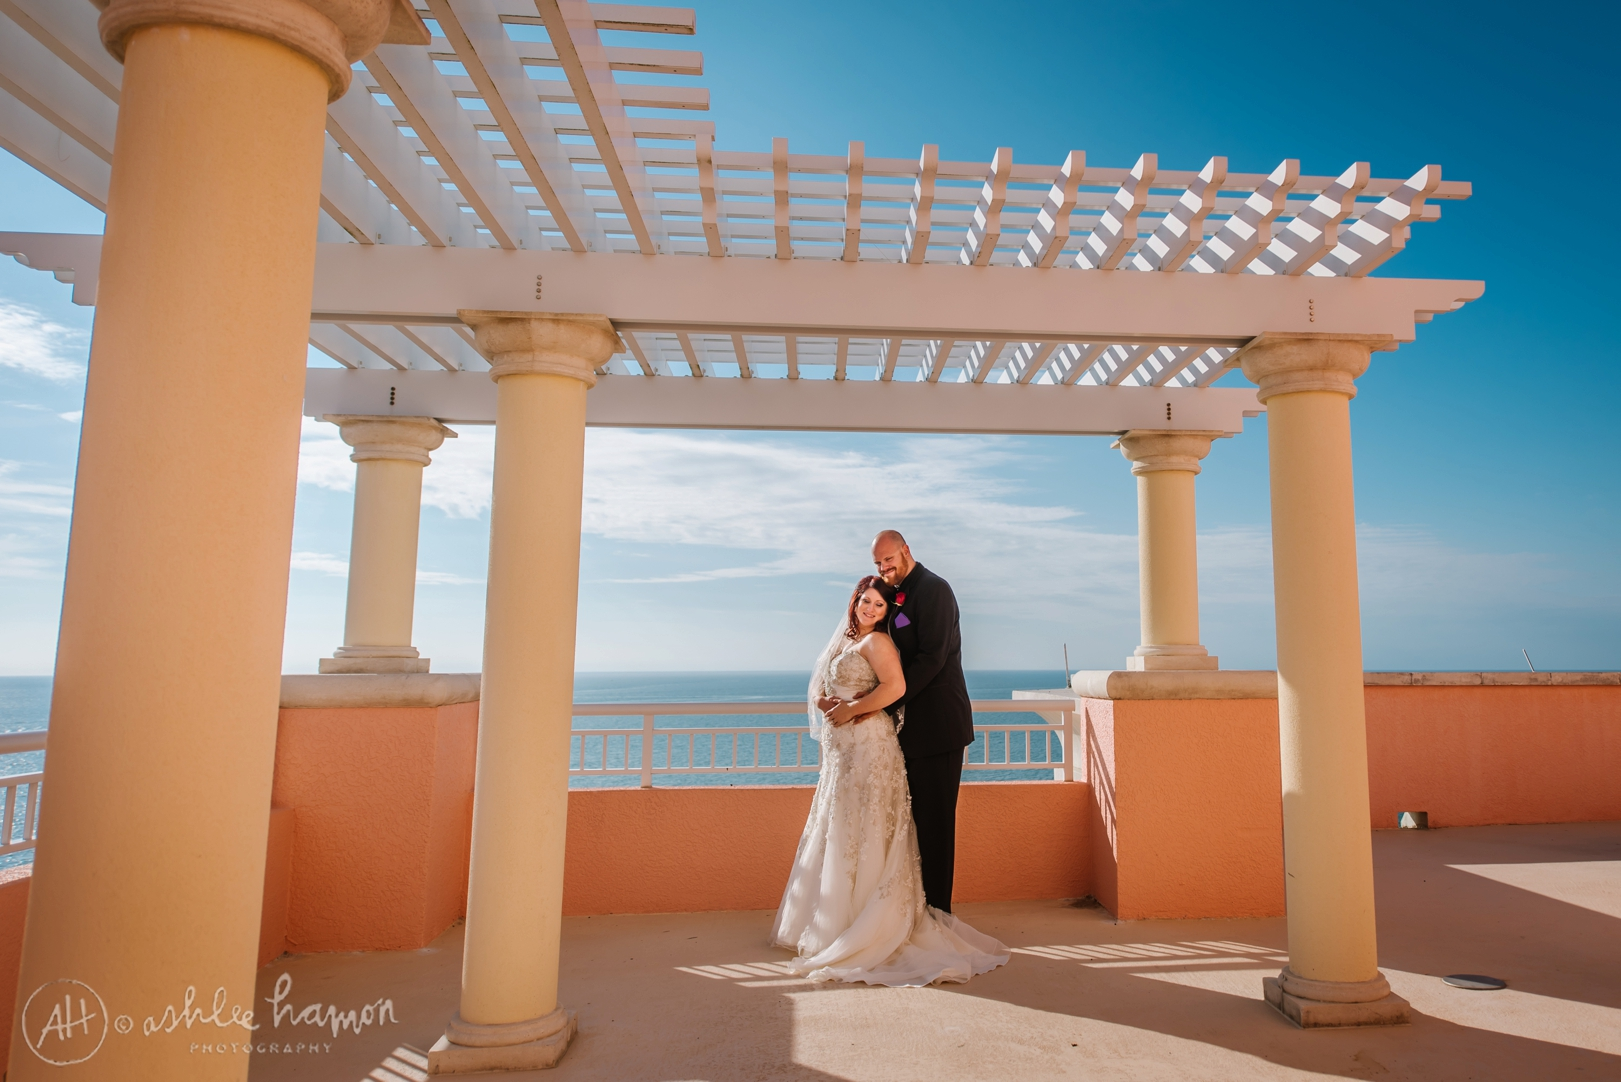 clearwater-beach-hyatt-masquerade-ballroom-themed-wedding-photograpy_0011.jpg